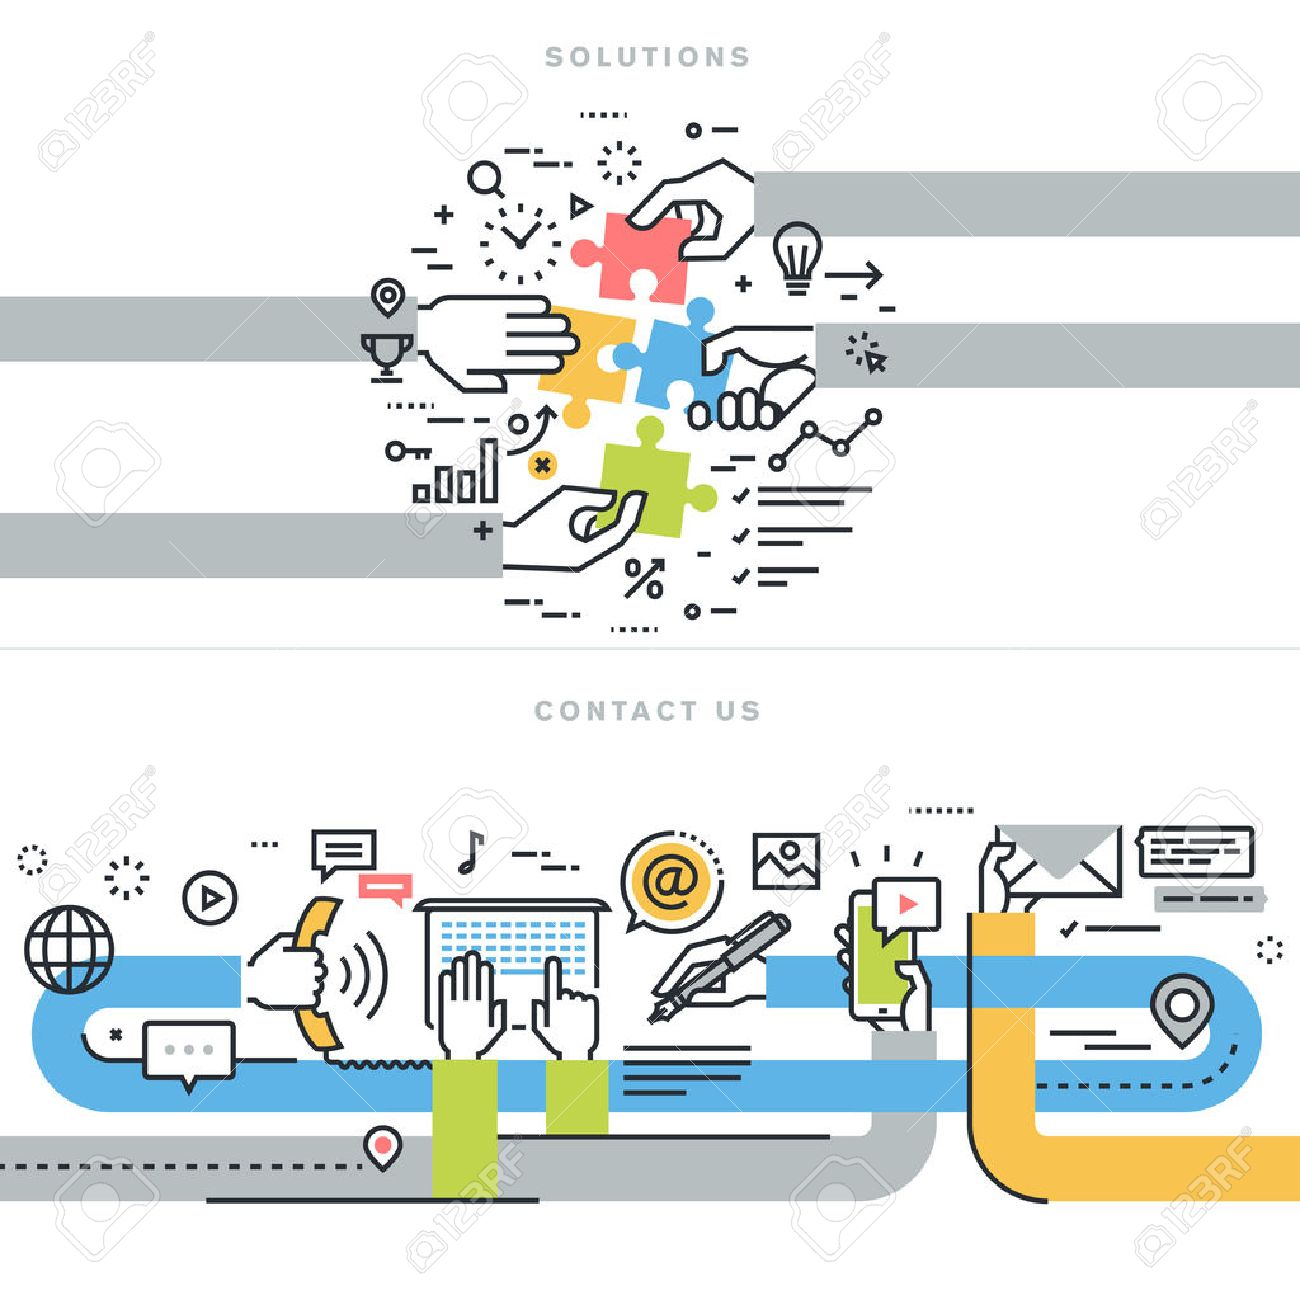 Flat line design vector illustration concepts for website banners for contact us and solutions web page, company contact information, business solutions and services, consulting, strategy and planning - 47892792